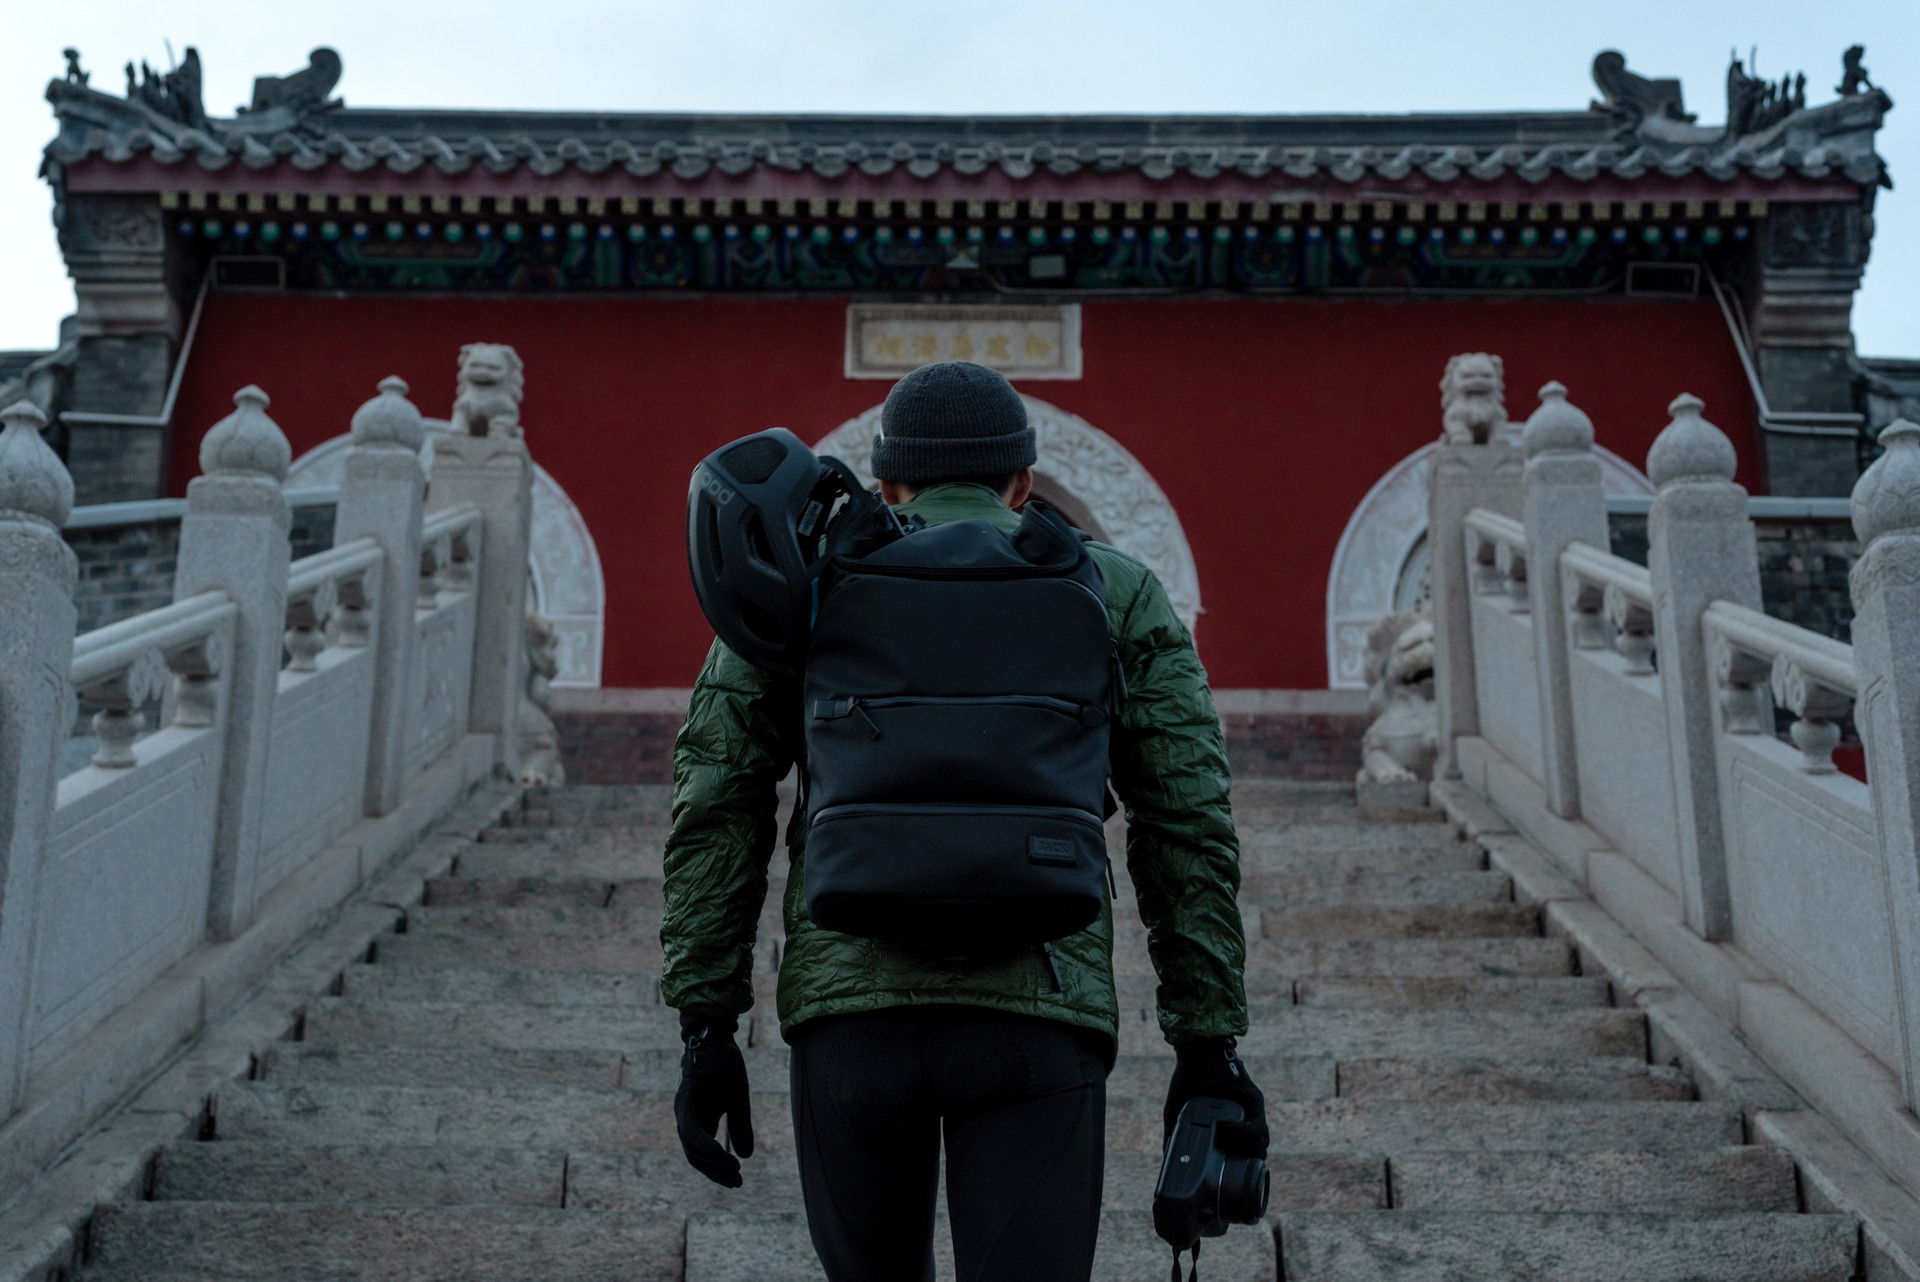 Asian men with TUMI backpack facing an ancient Chinese temple